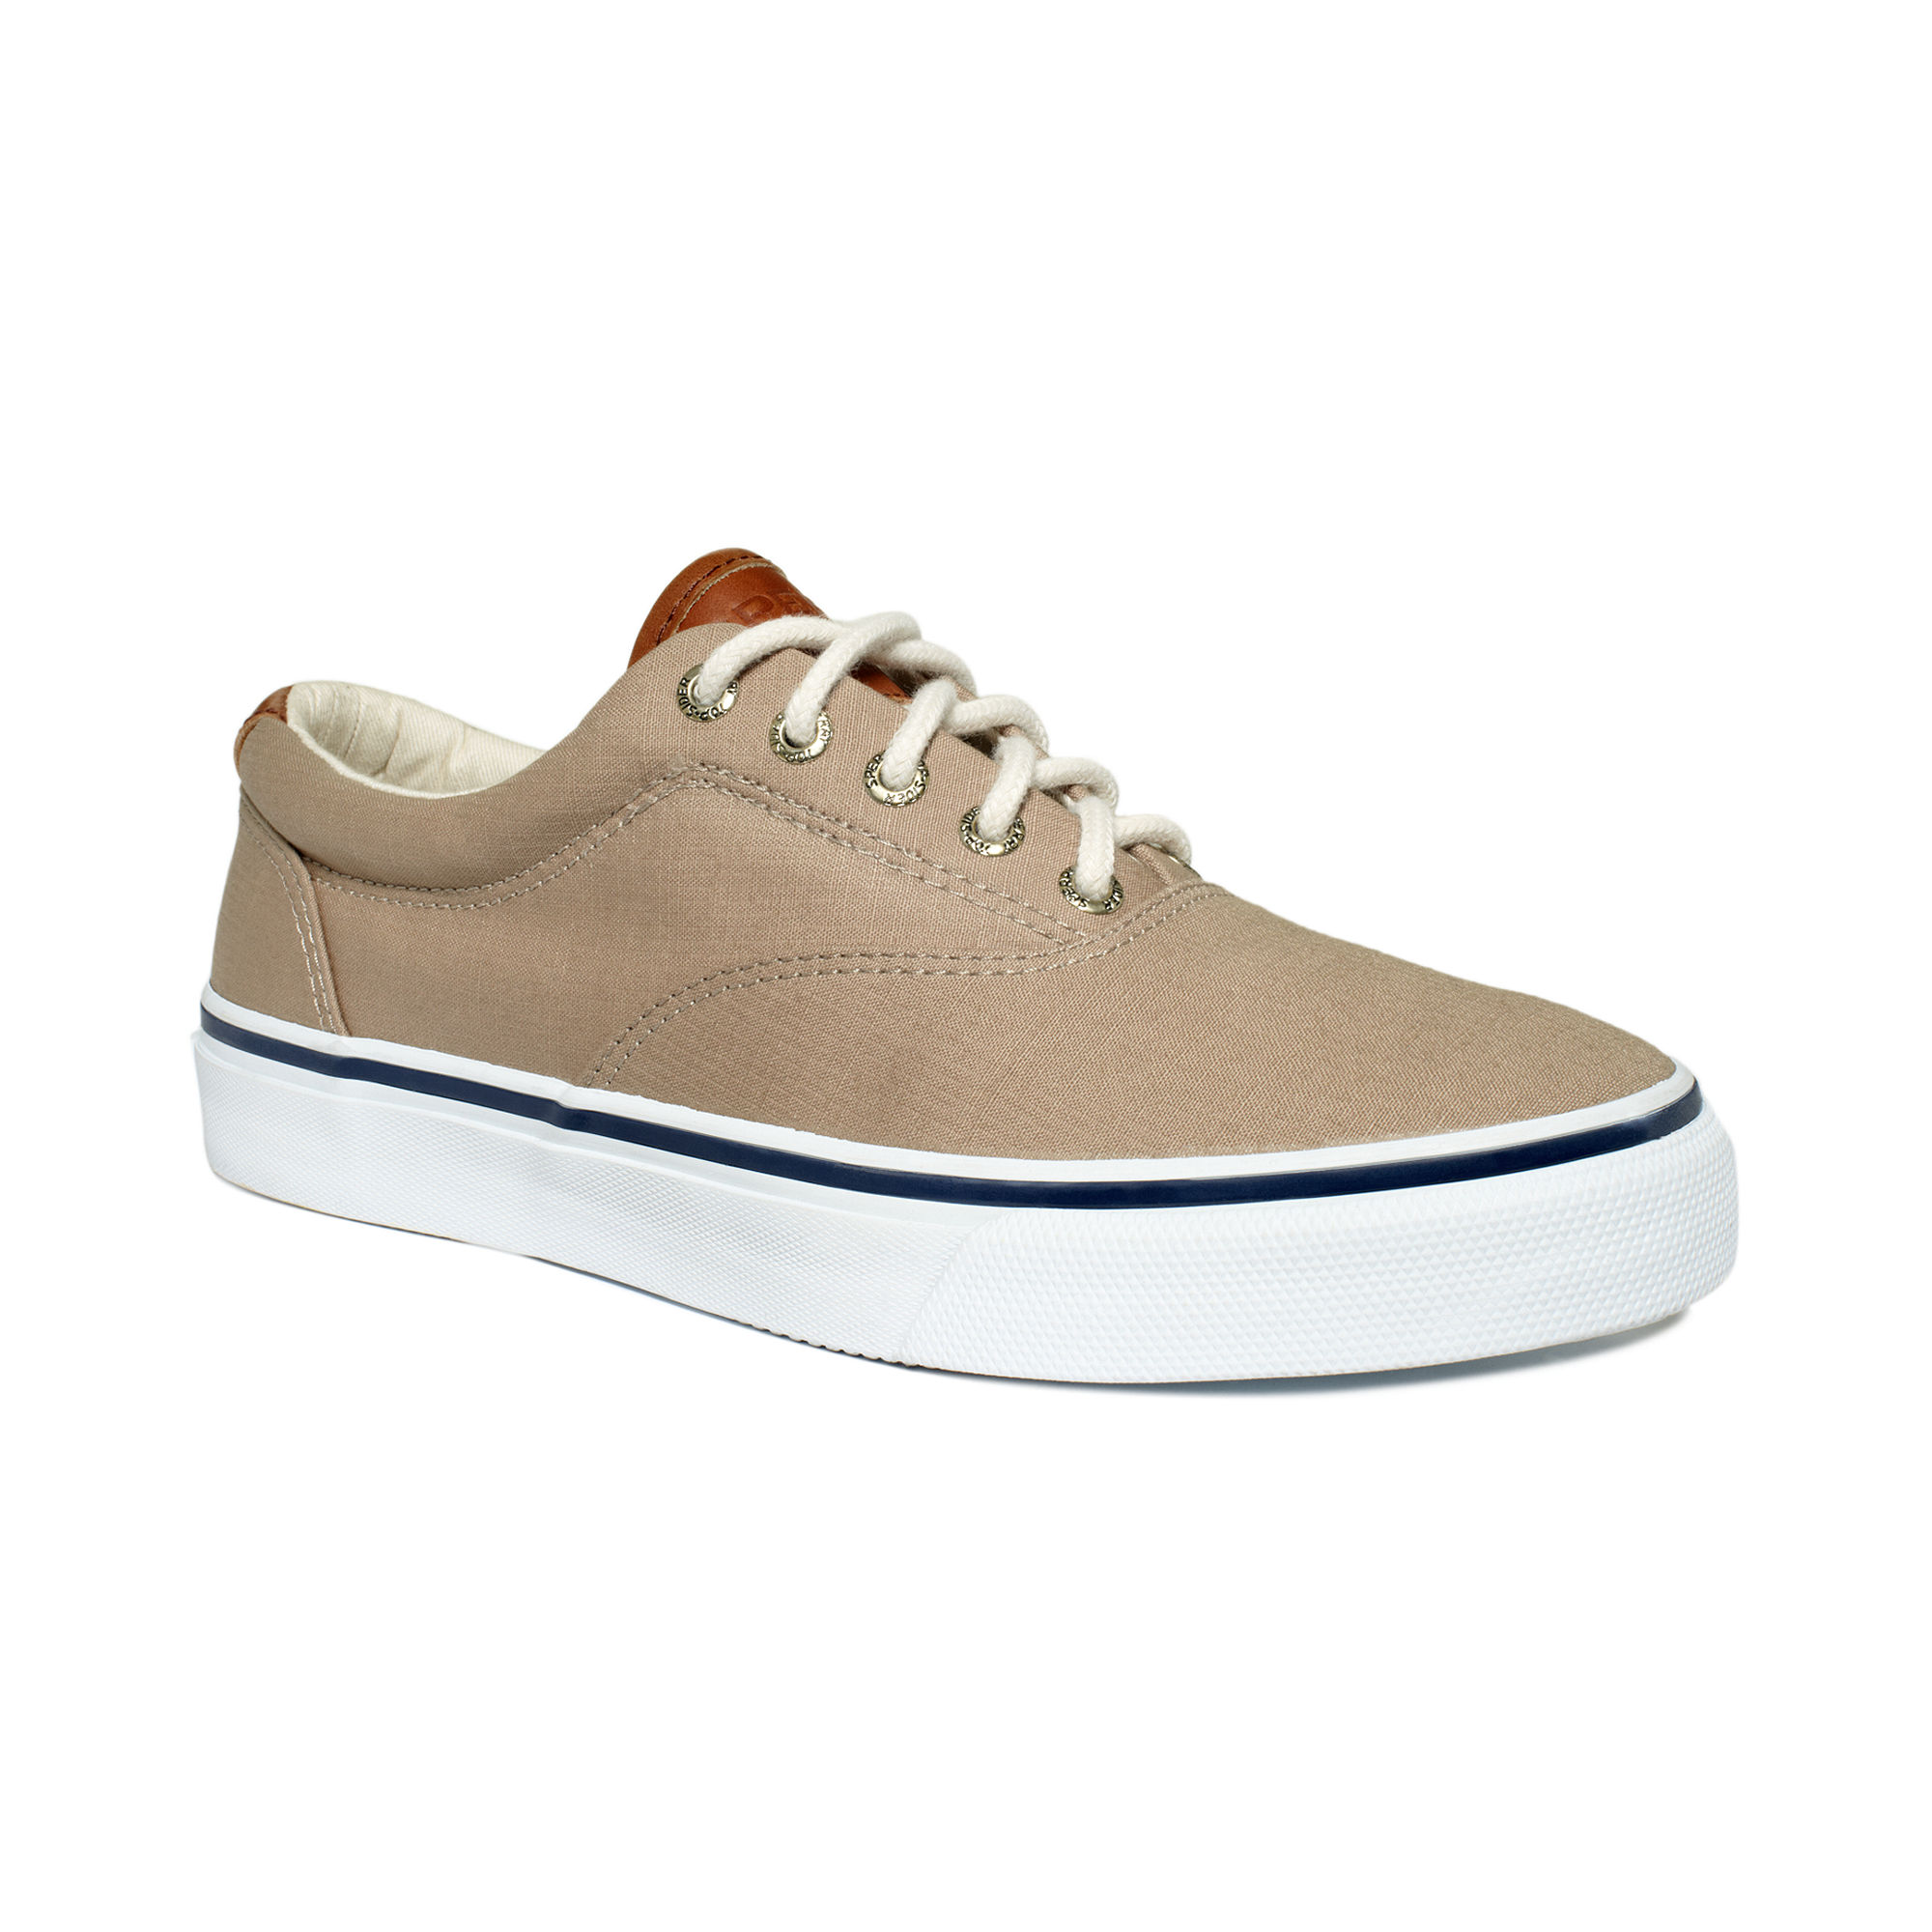 sperry top sider striper laceless canvas shoes in beige